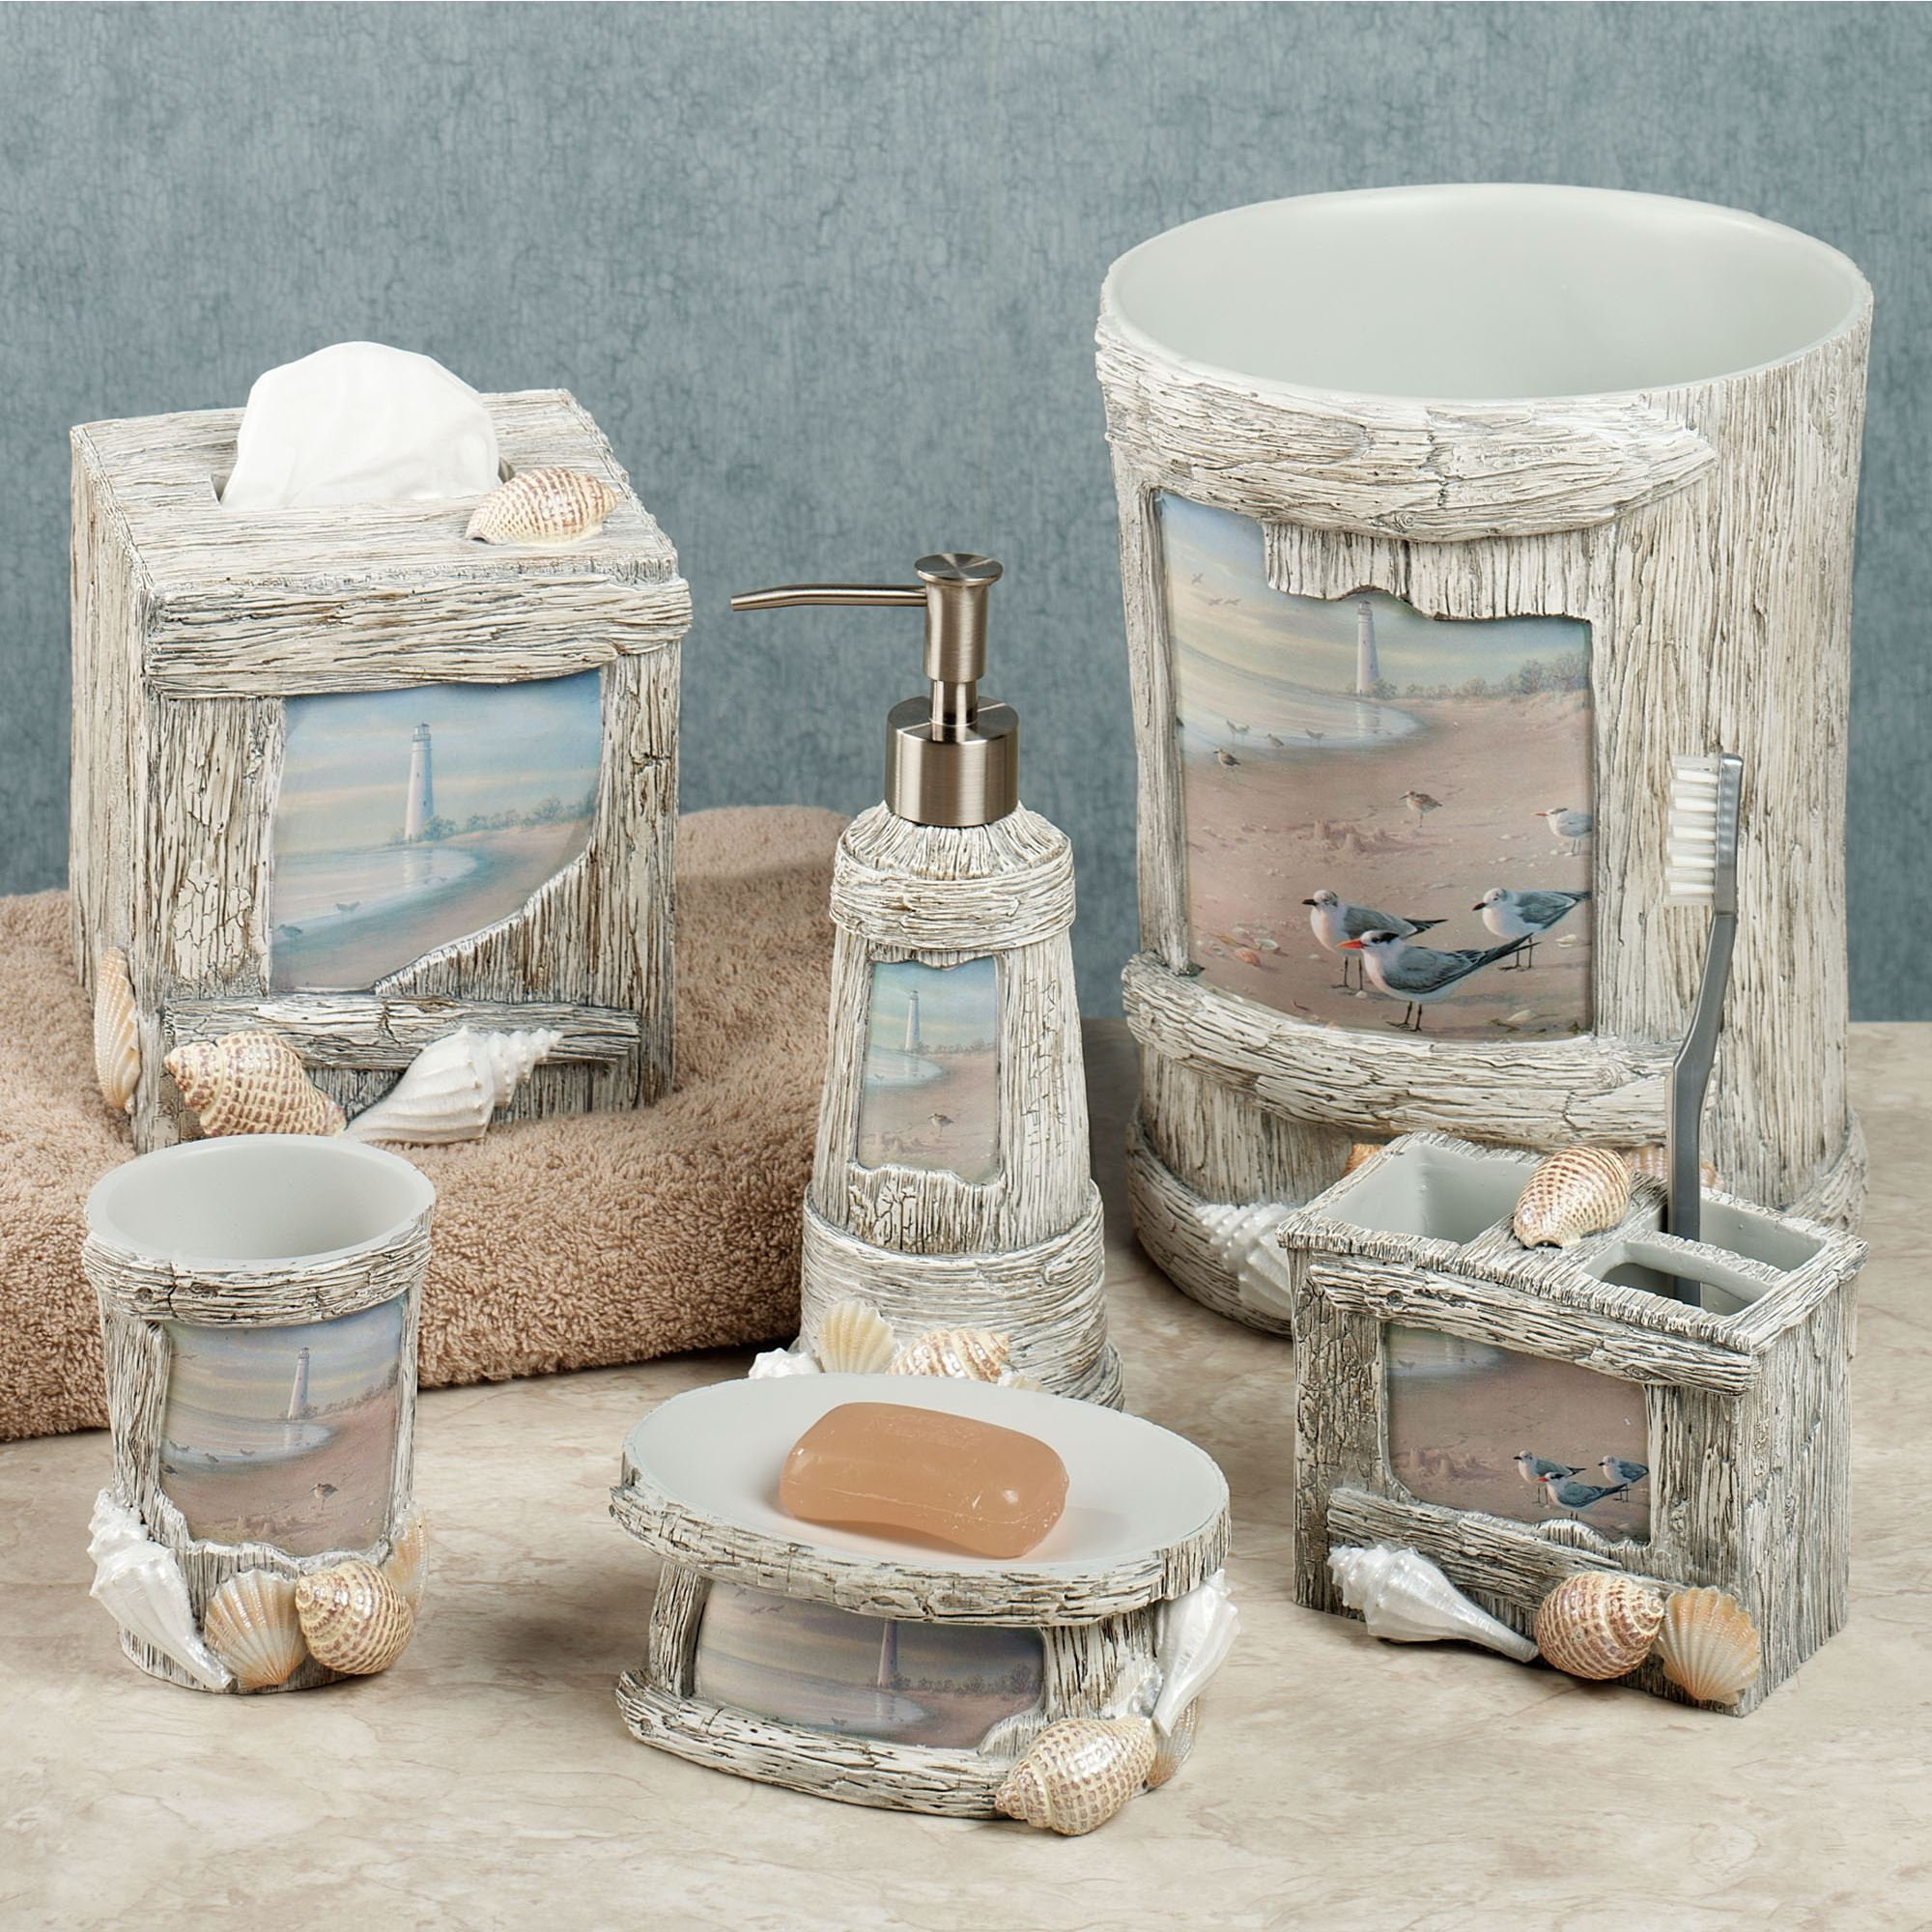 At the beach bath accessories for Pics of bathroom decor